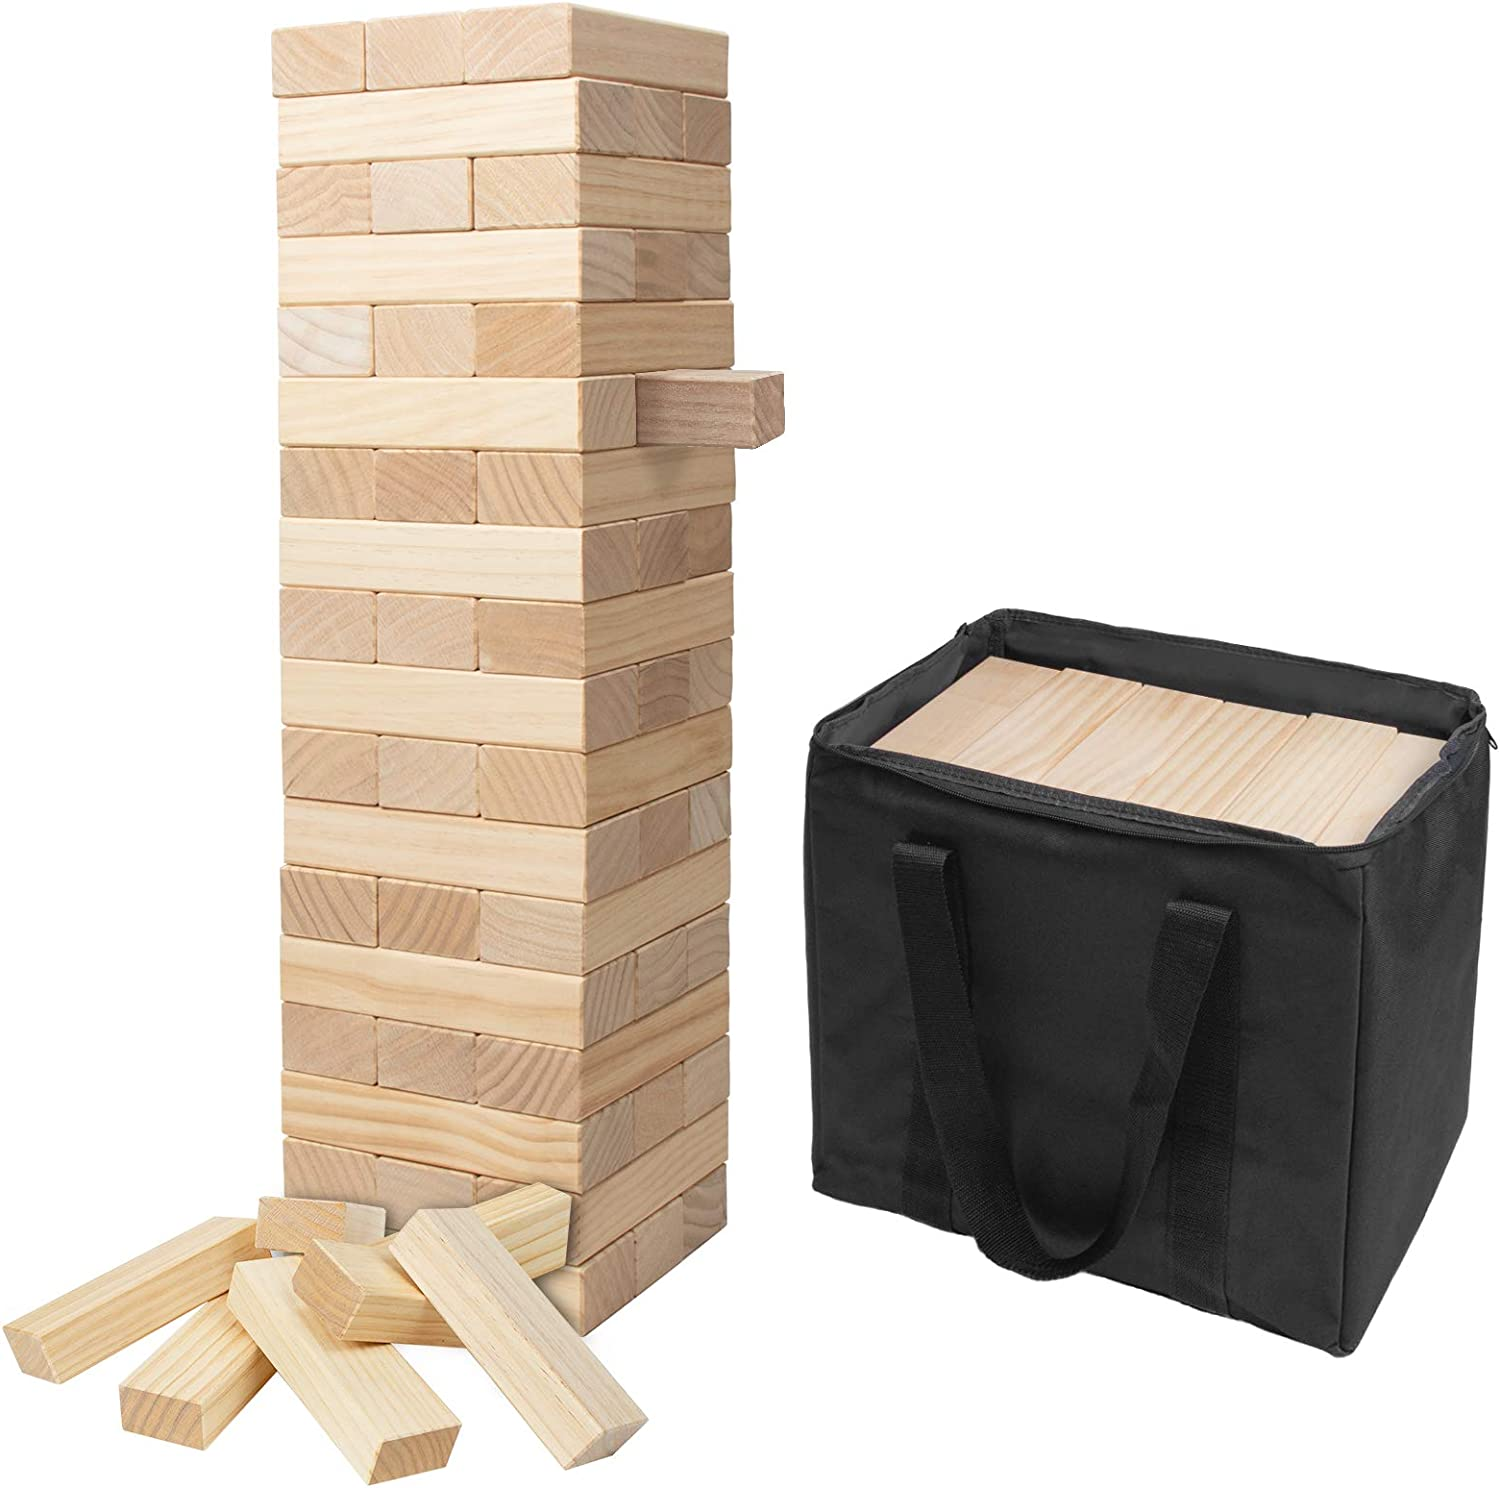 X-Large Giant Challenge the lowest price of Japan Tumble Tower Stacks to Feet Free shipping Game 5+ Jumbo 54PCS